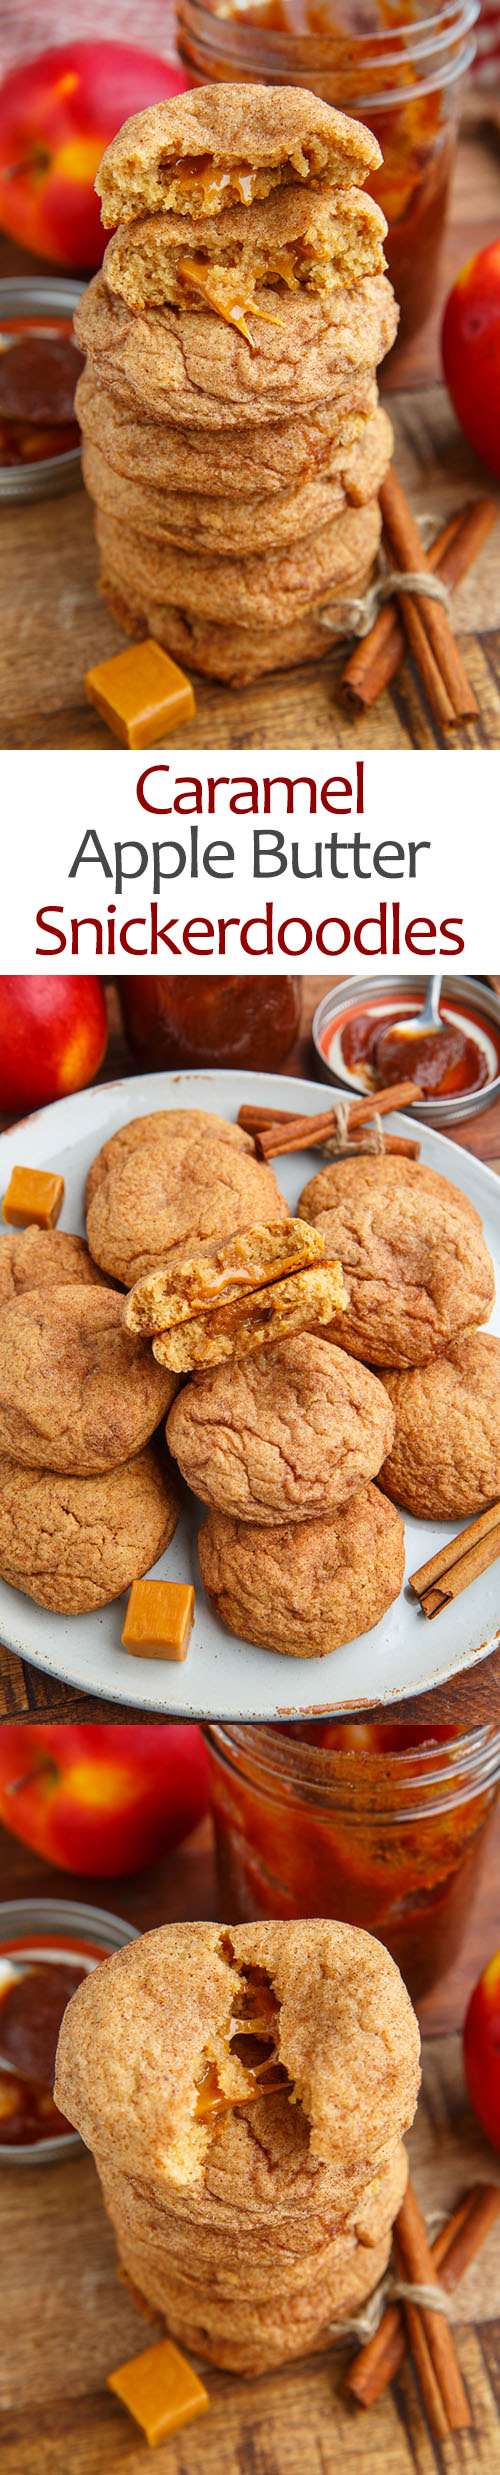 Caramel Apple Snickerdoodles